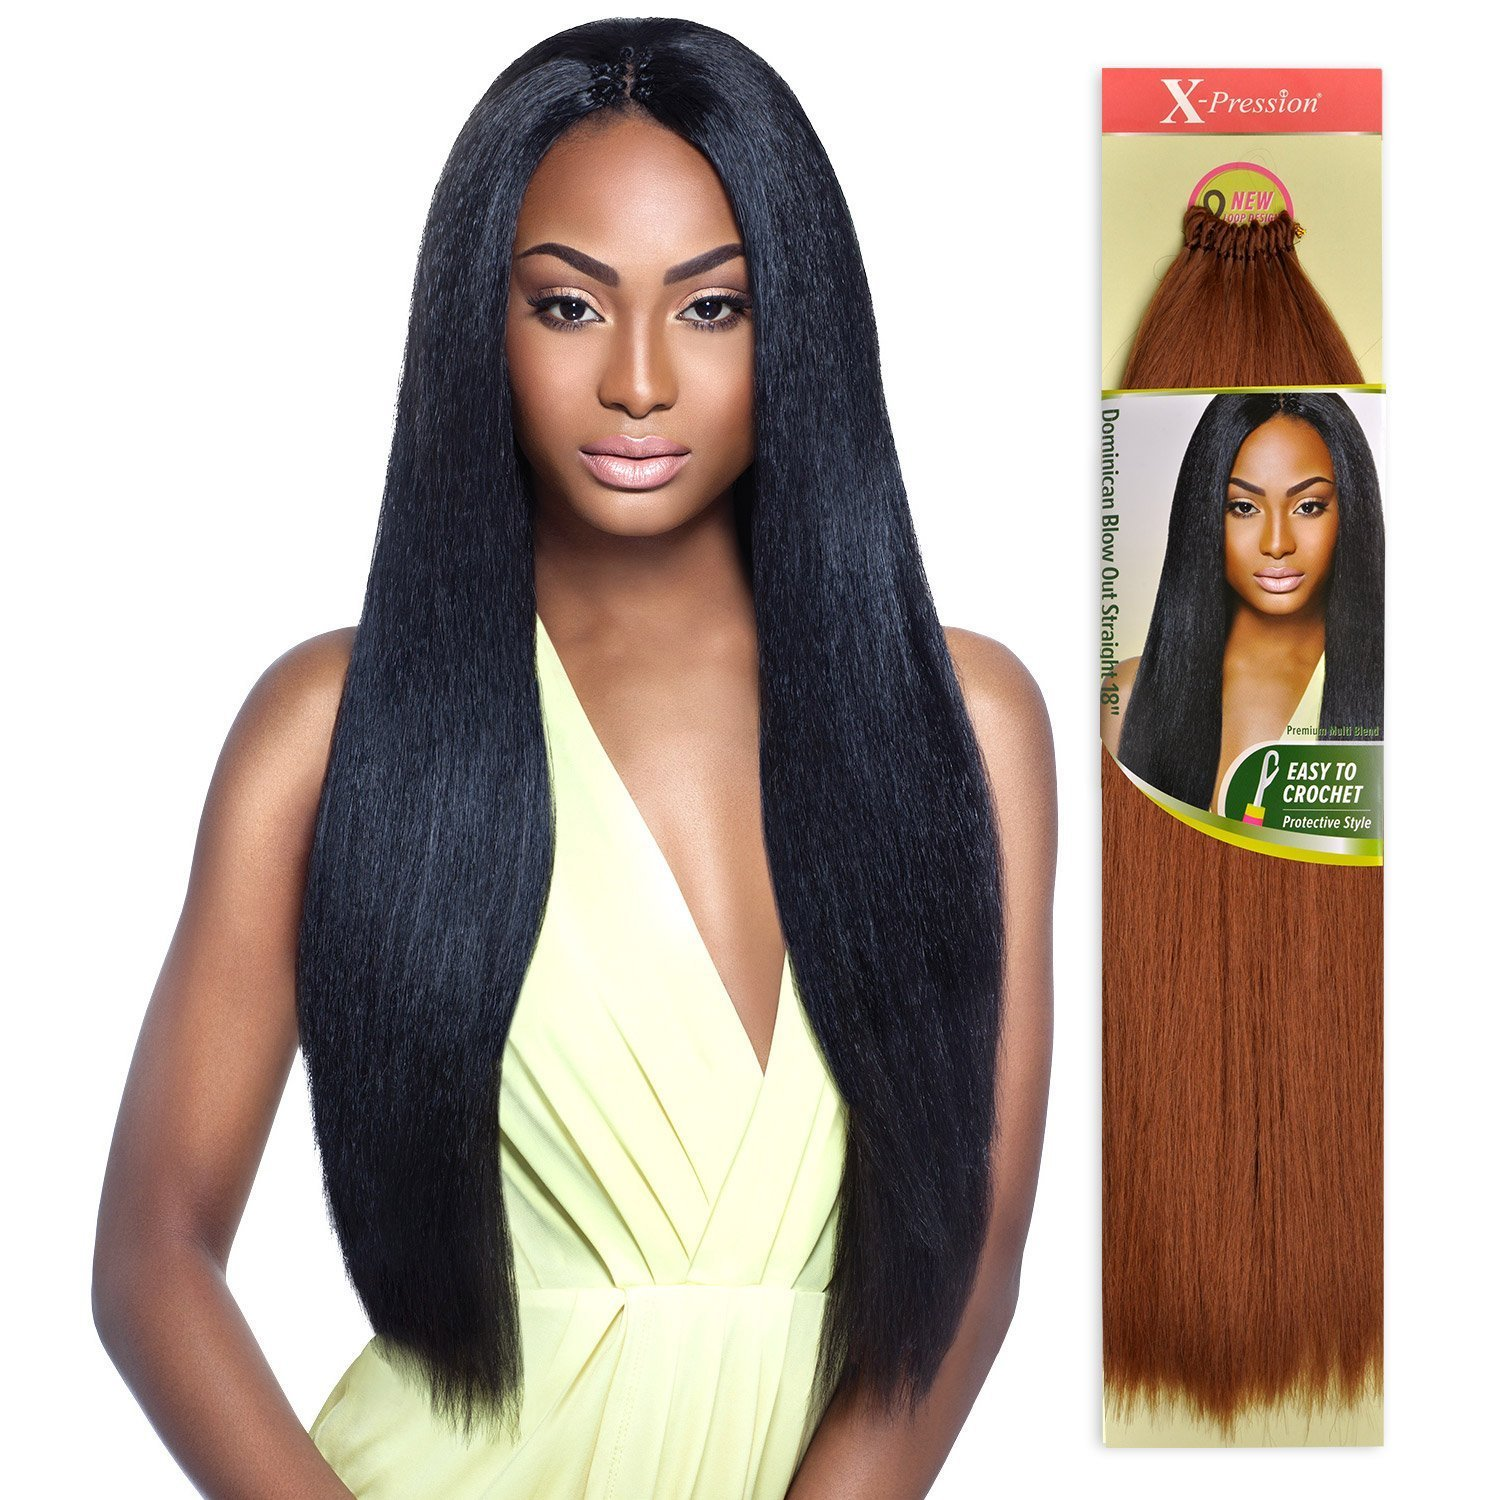 X Pression 18 Dominican Blow Out Synthetic Braid Hair Crochet By